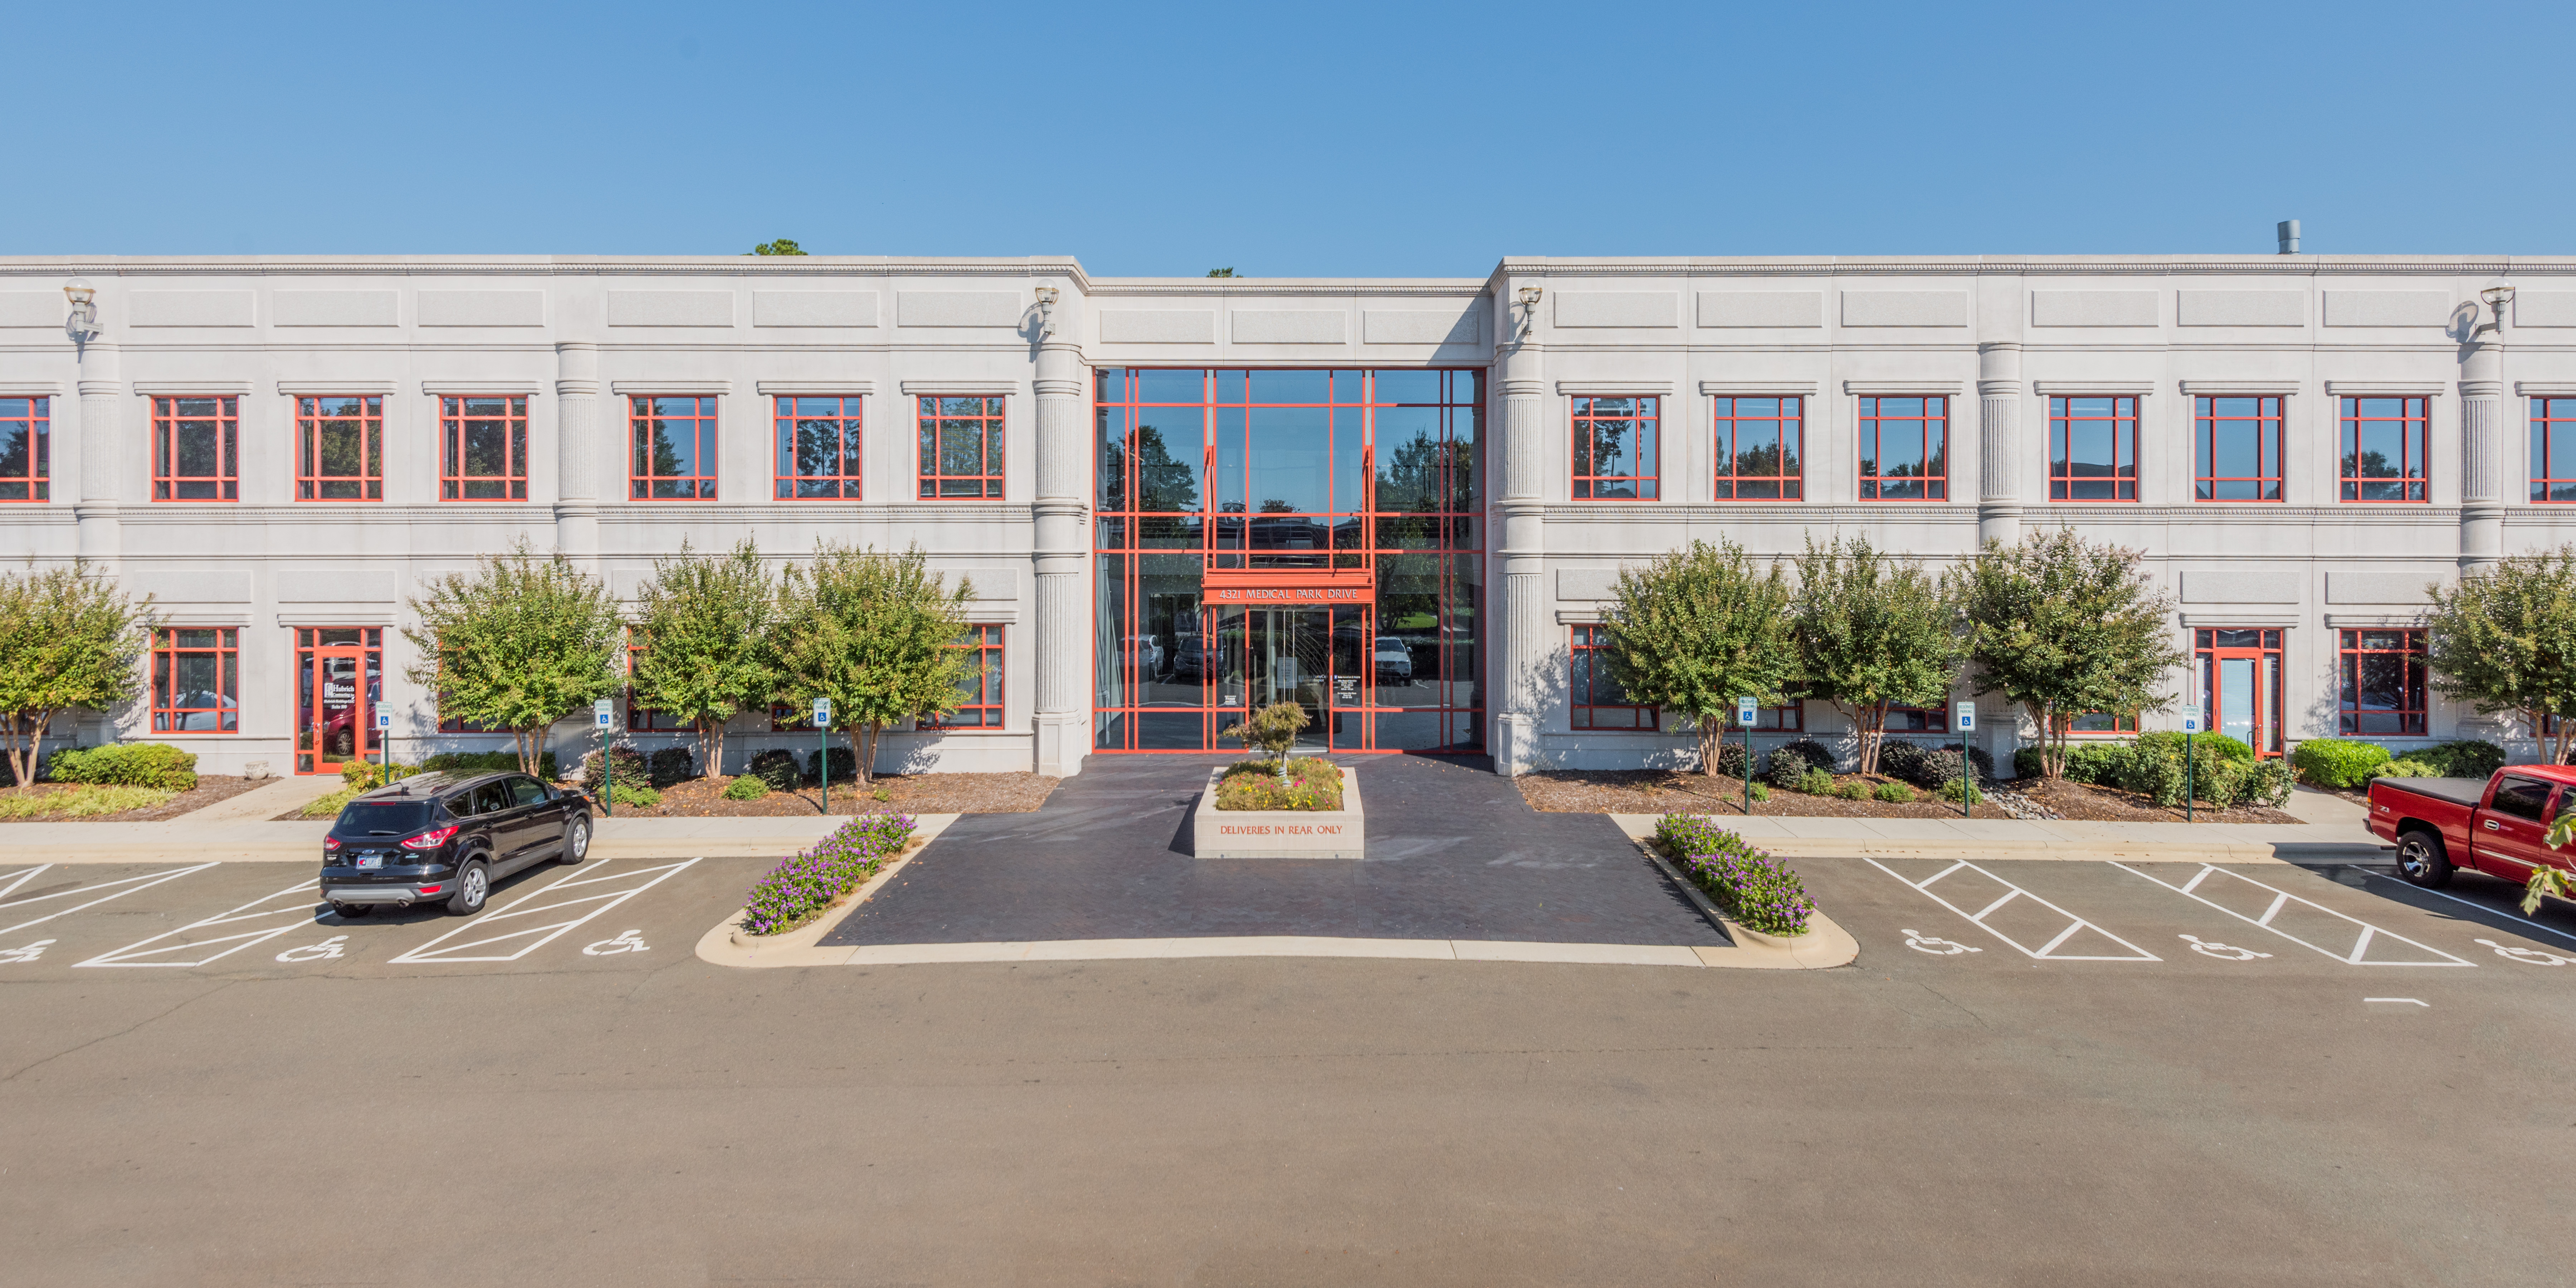 News Release: HFF announces $8 6M sale of medical office building